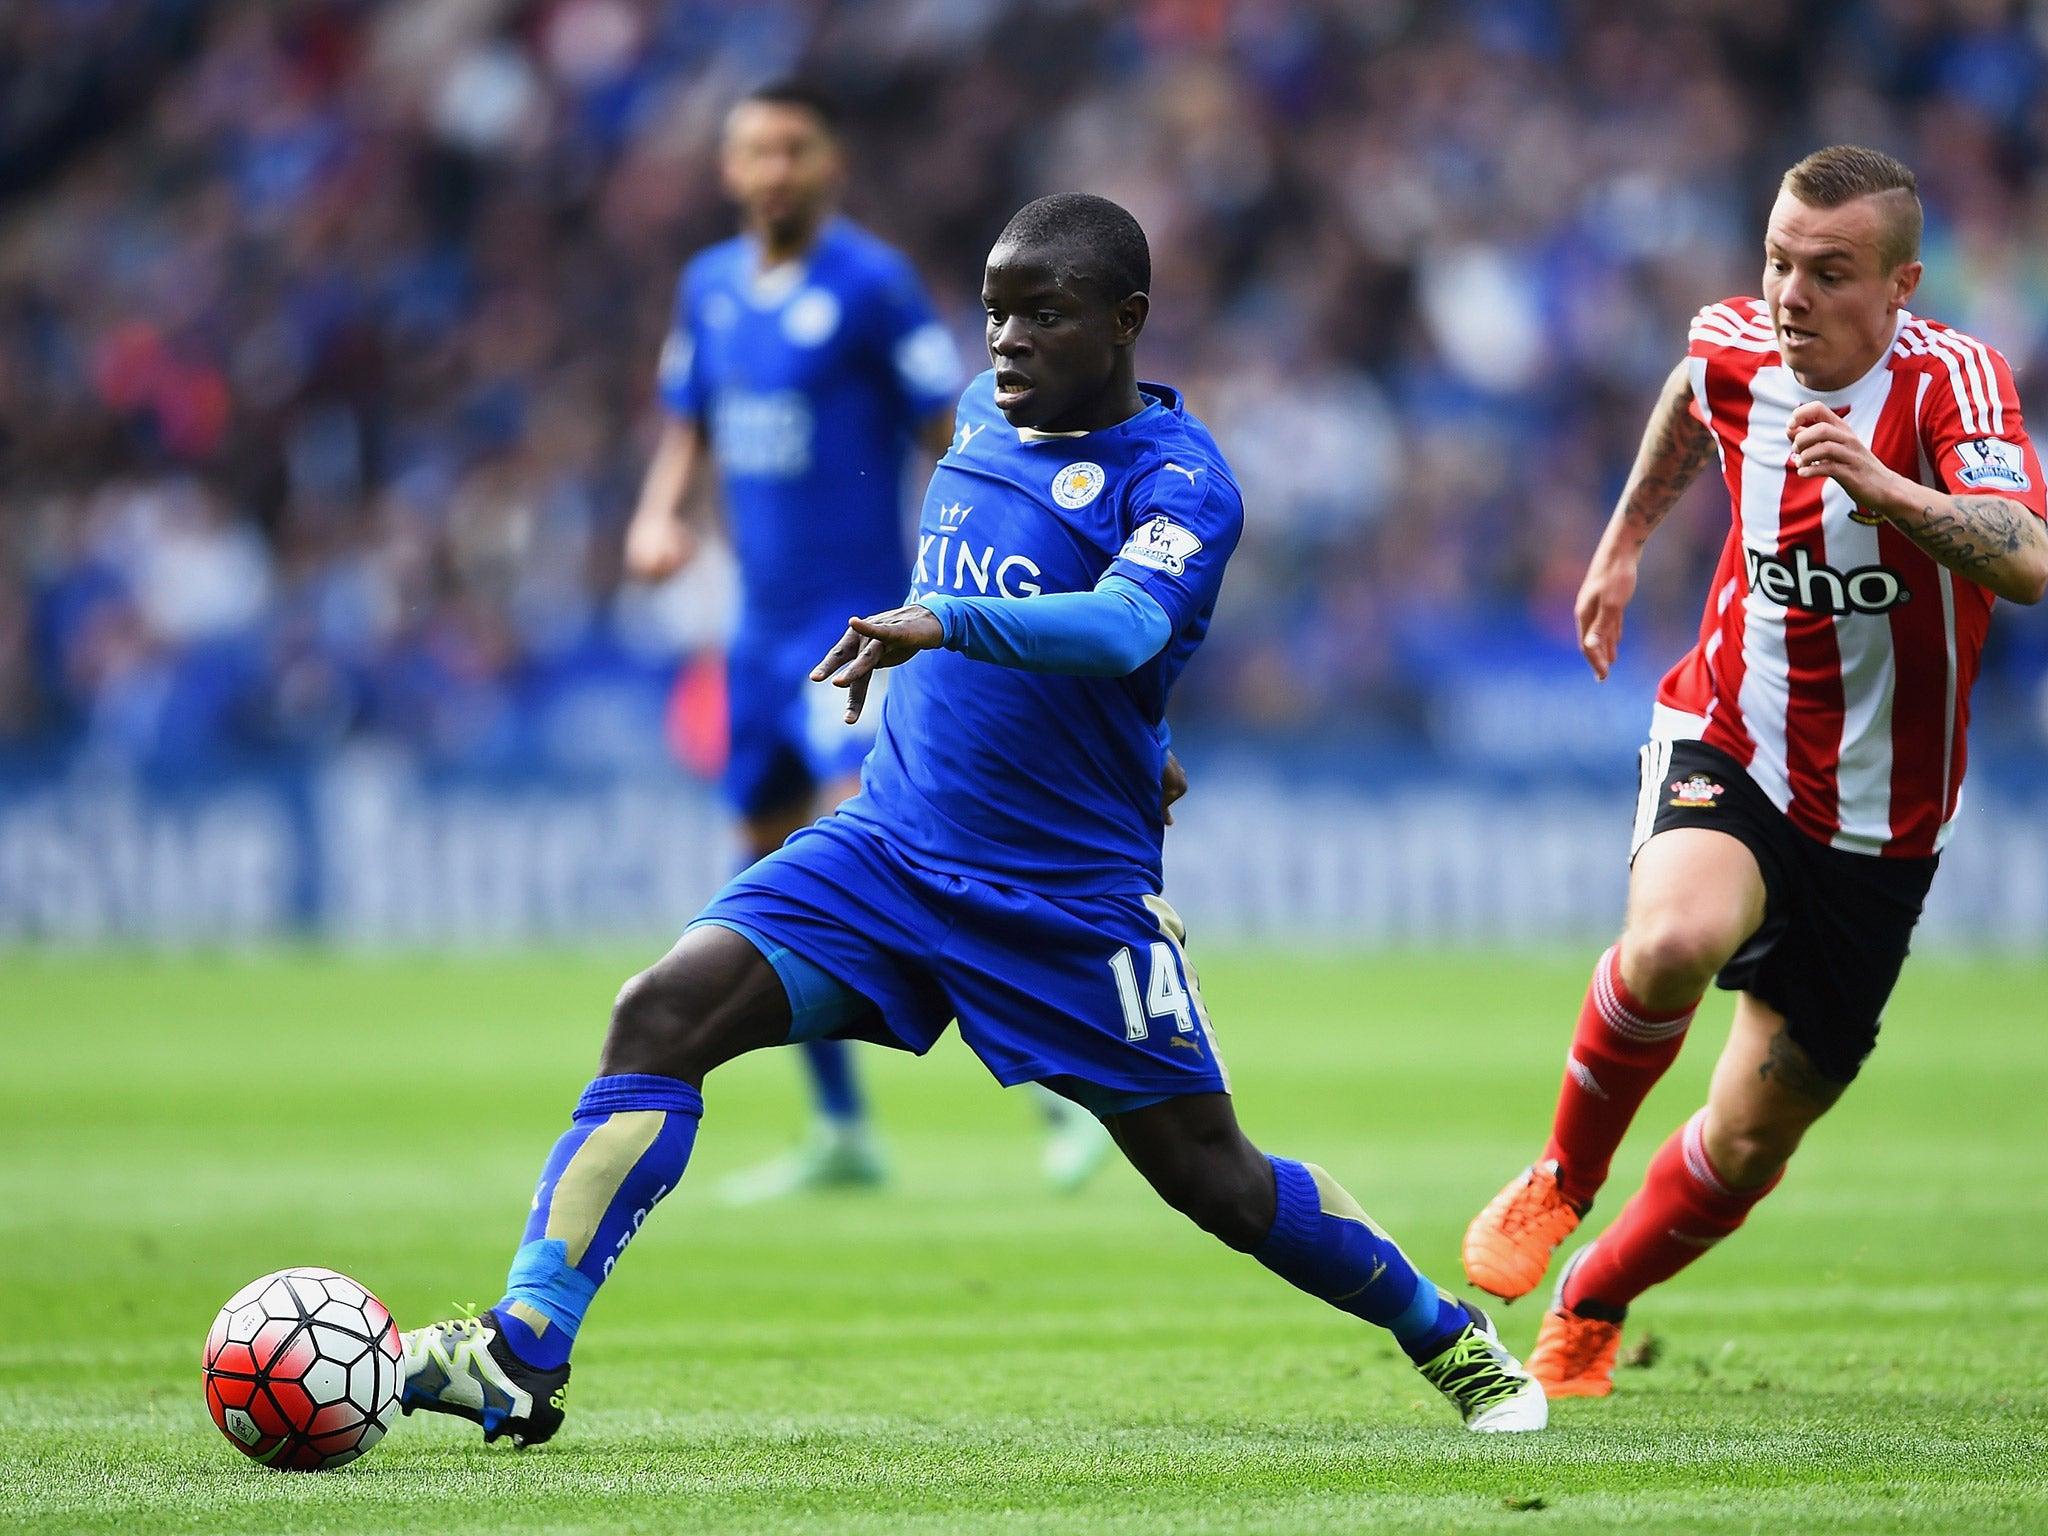 Leicester win Premier League title: Bookmakers' set to lose over